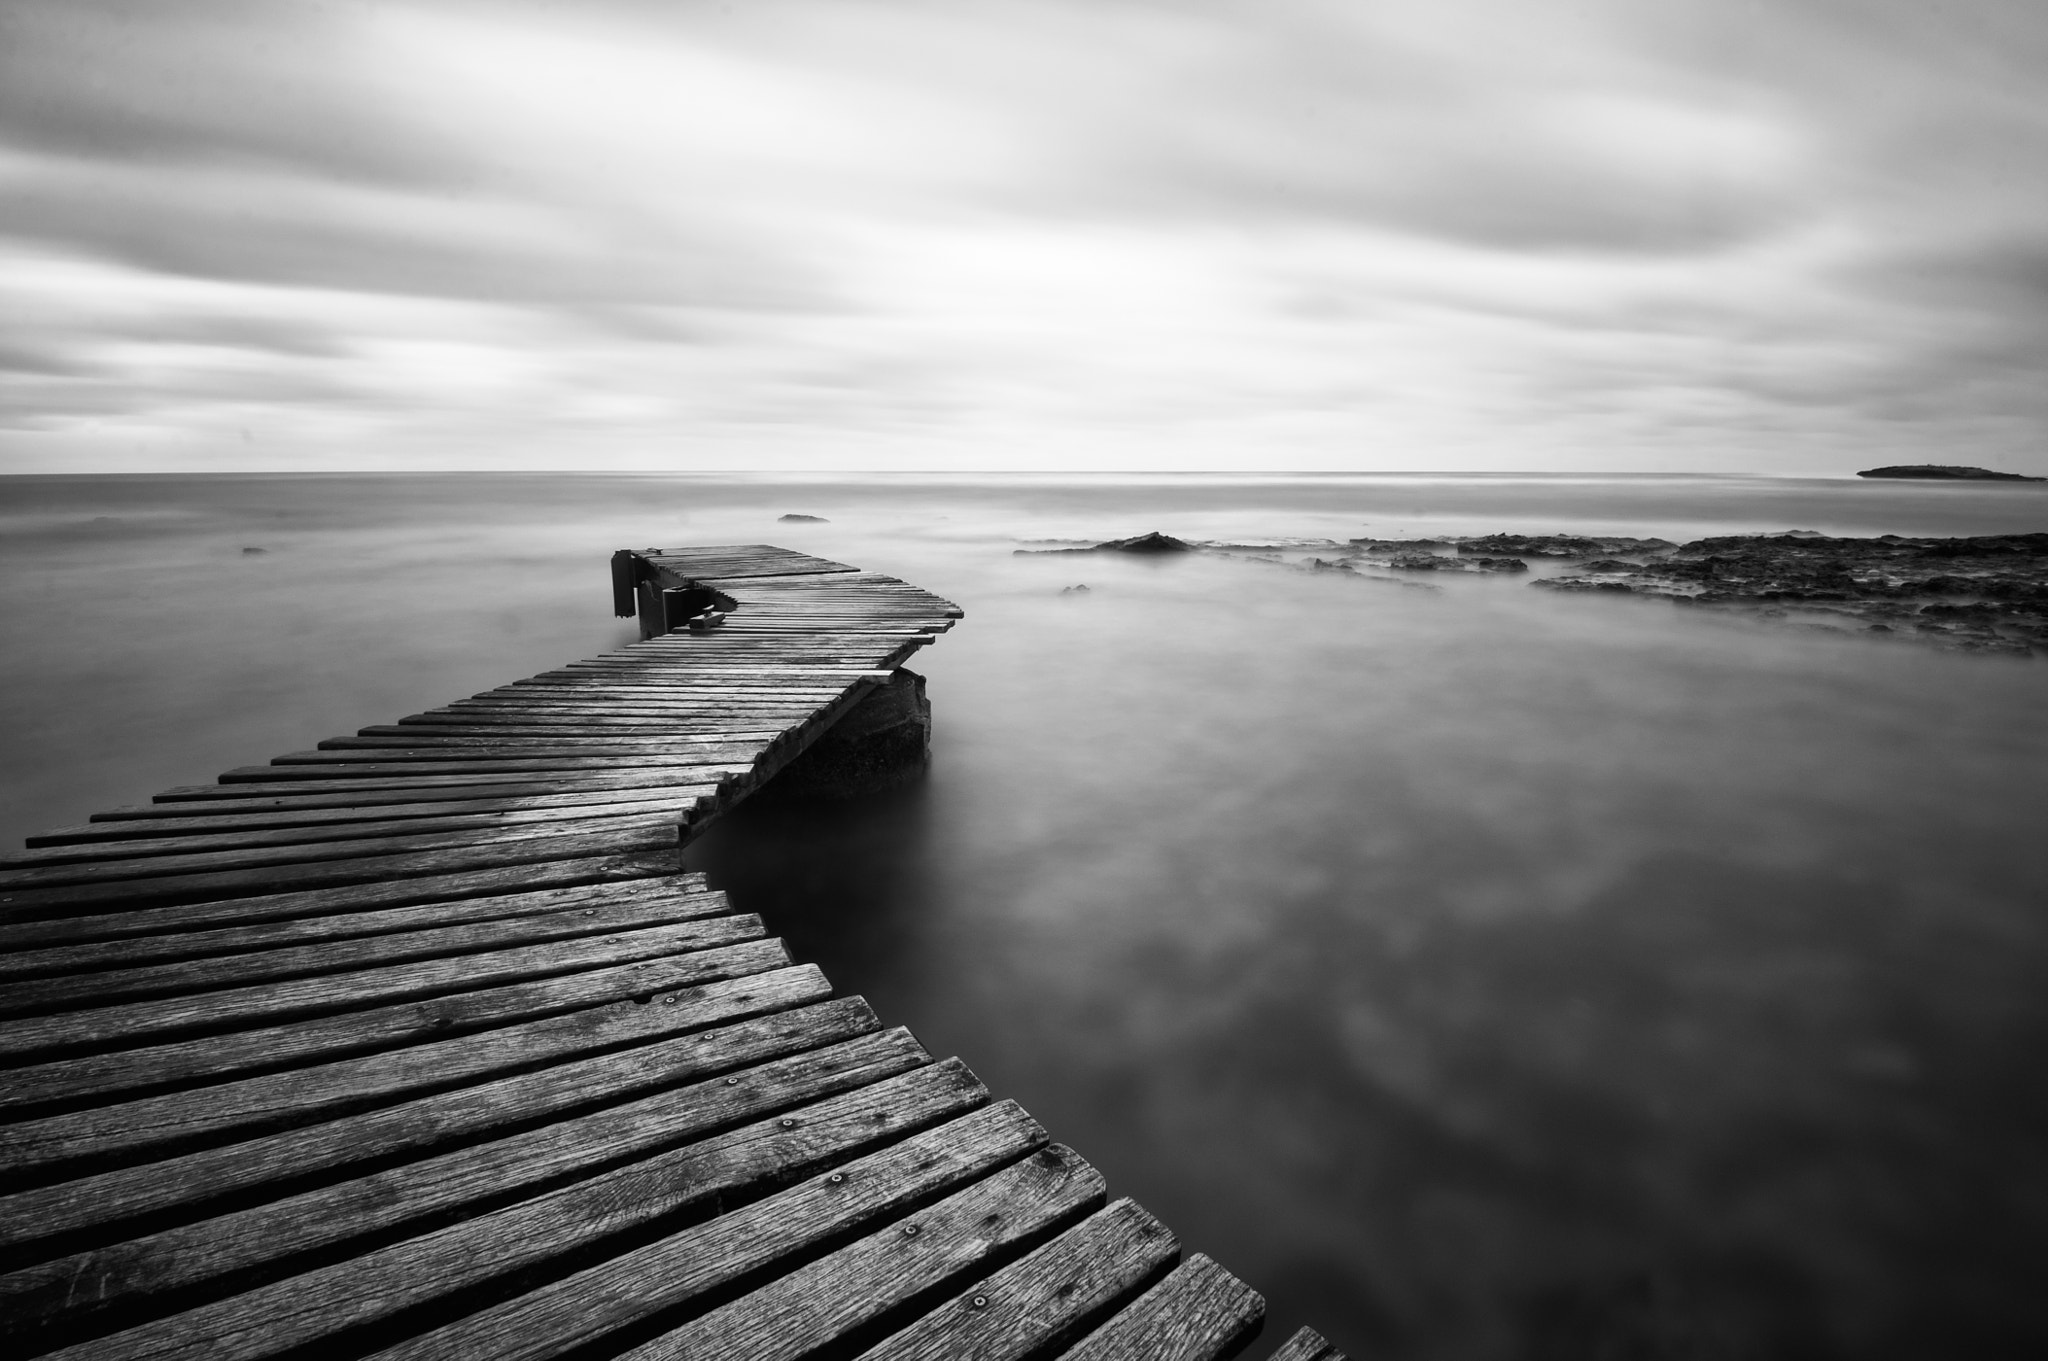 Photograph Serpent's dock by Carlo Murenu on 500px